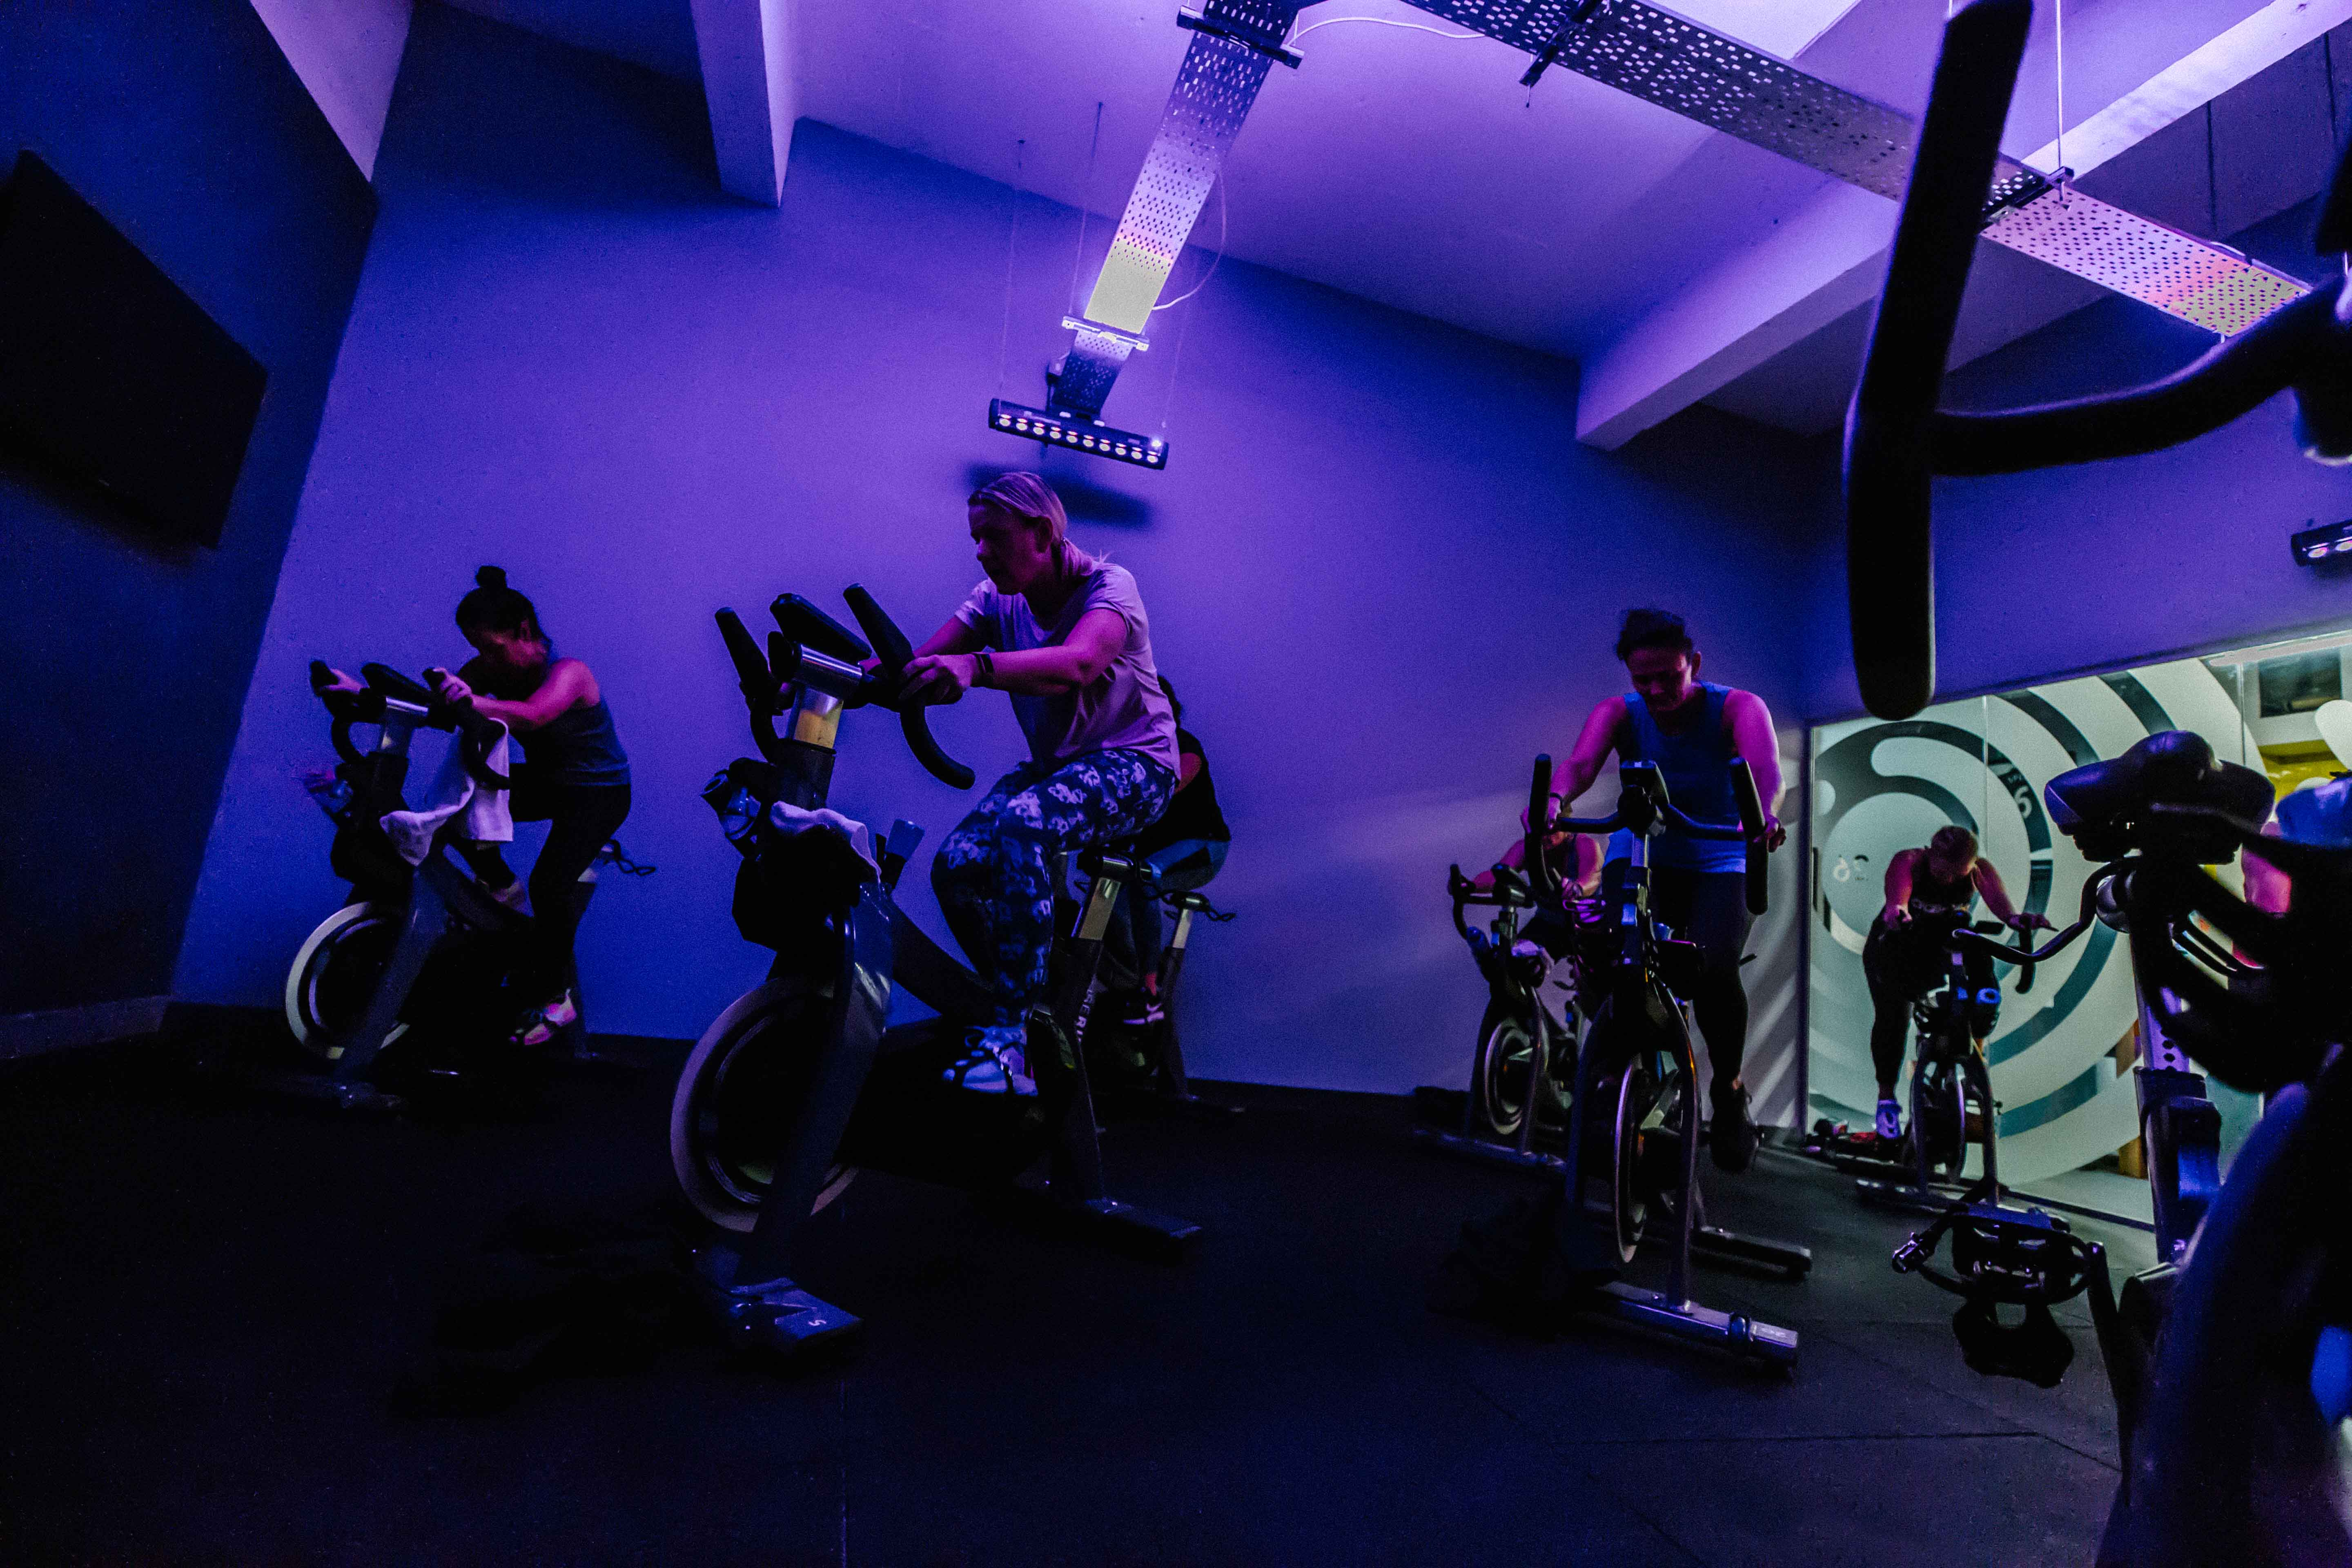 Fit26 - Indoor Spin Class